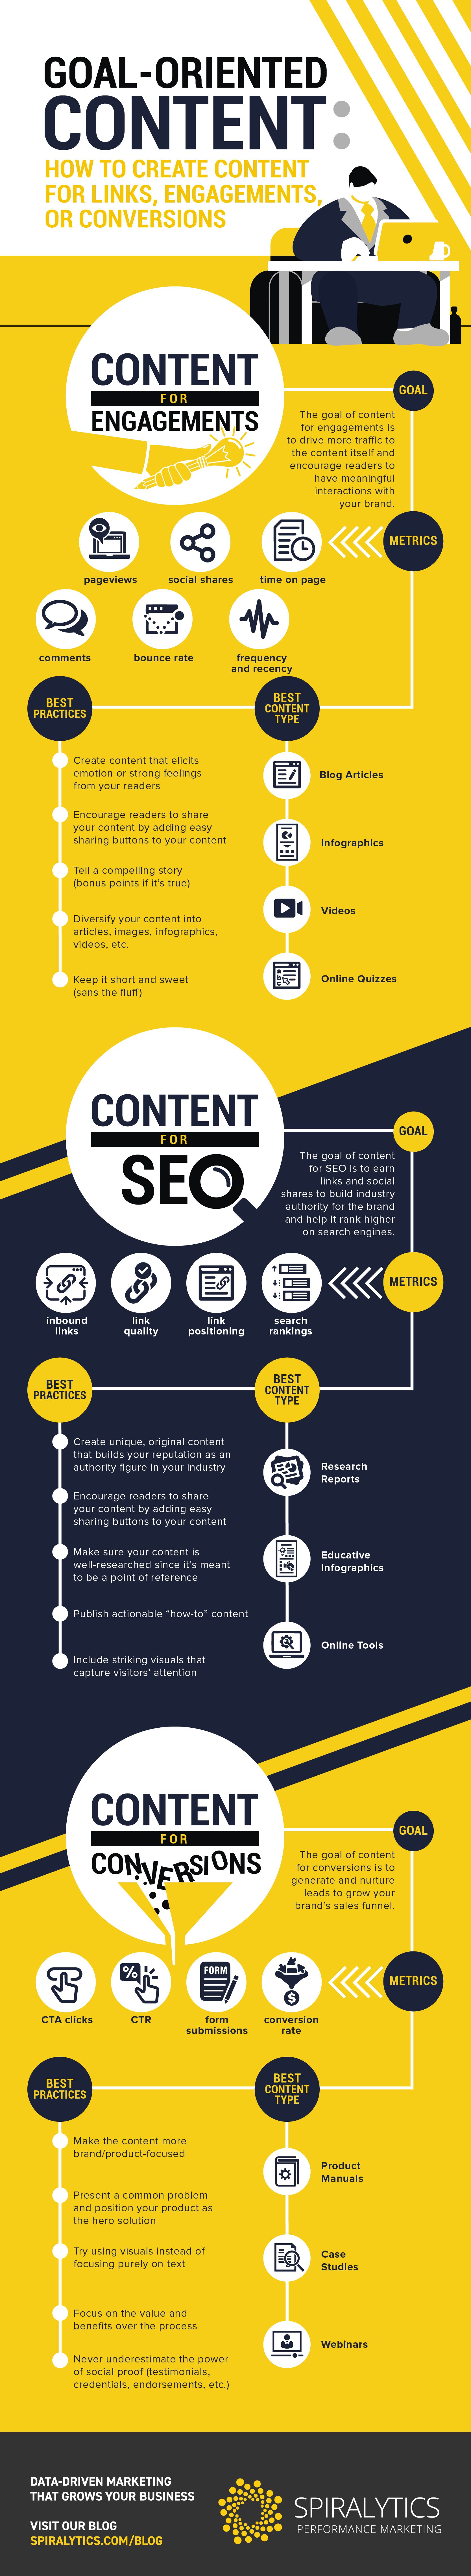 Infographic outlines how to create different types of content